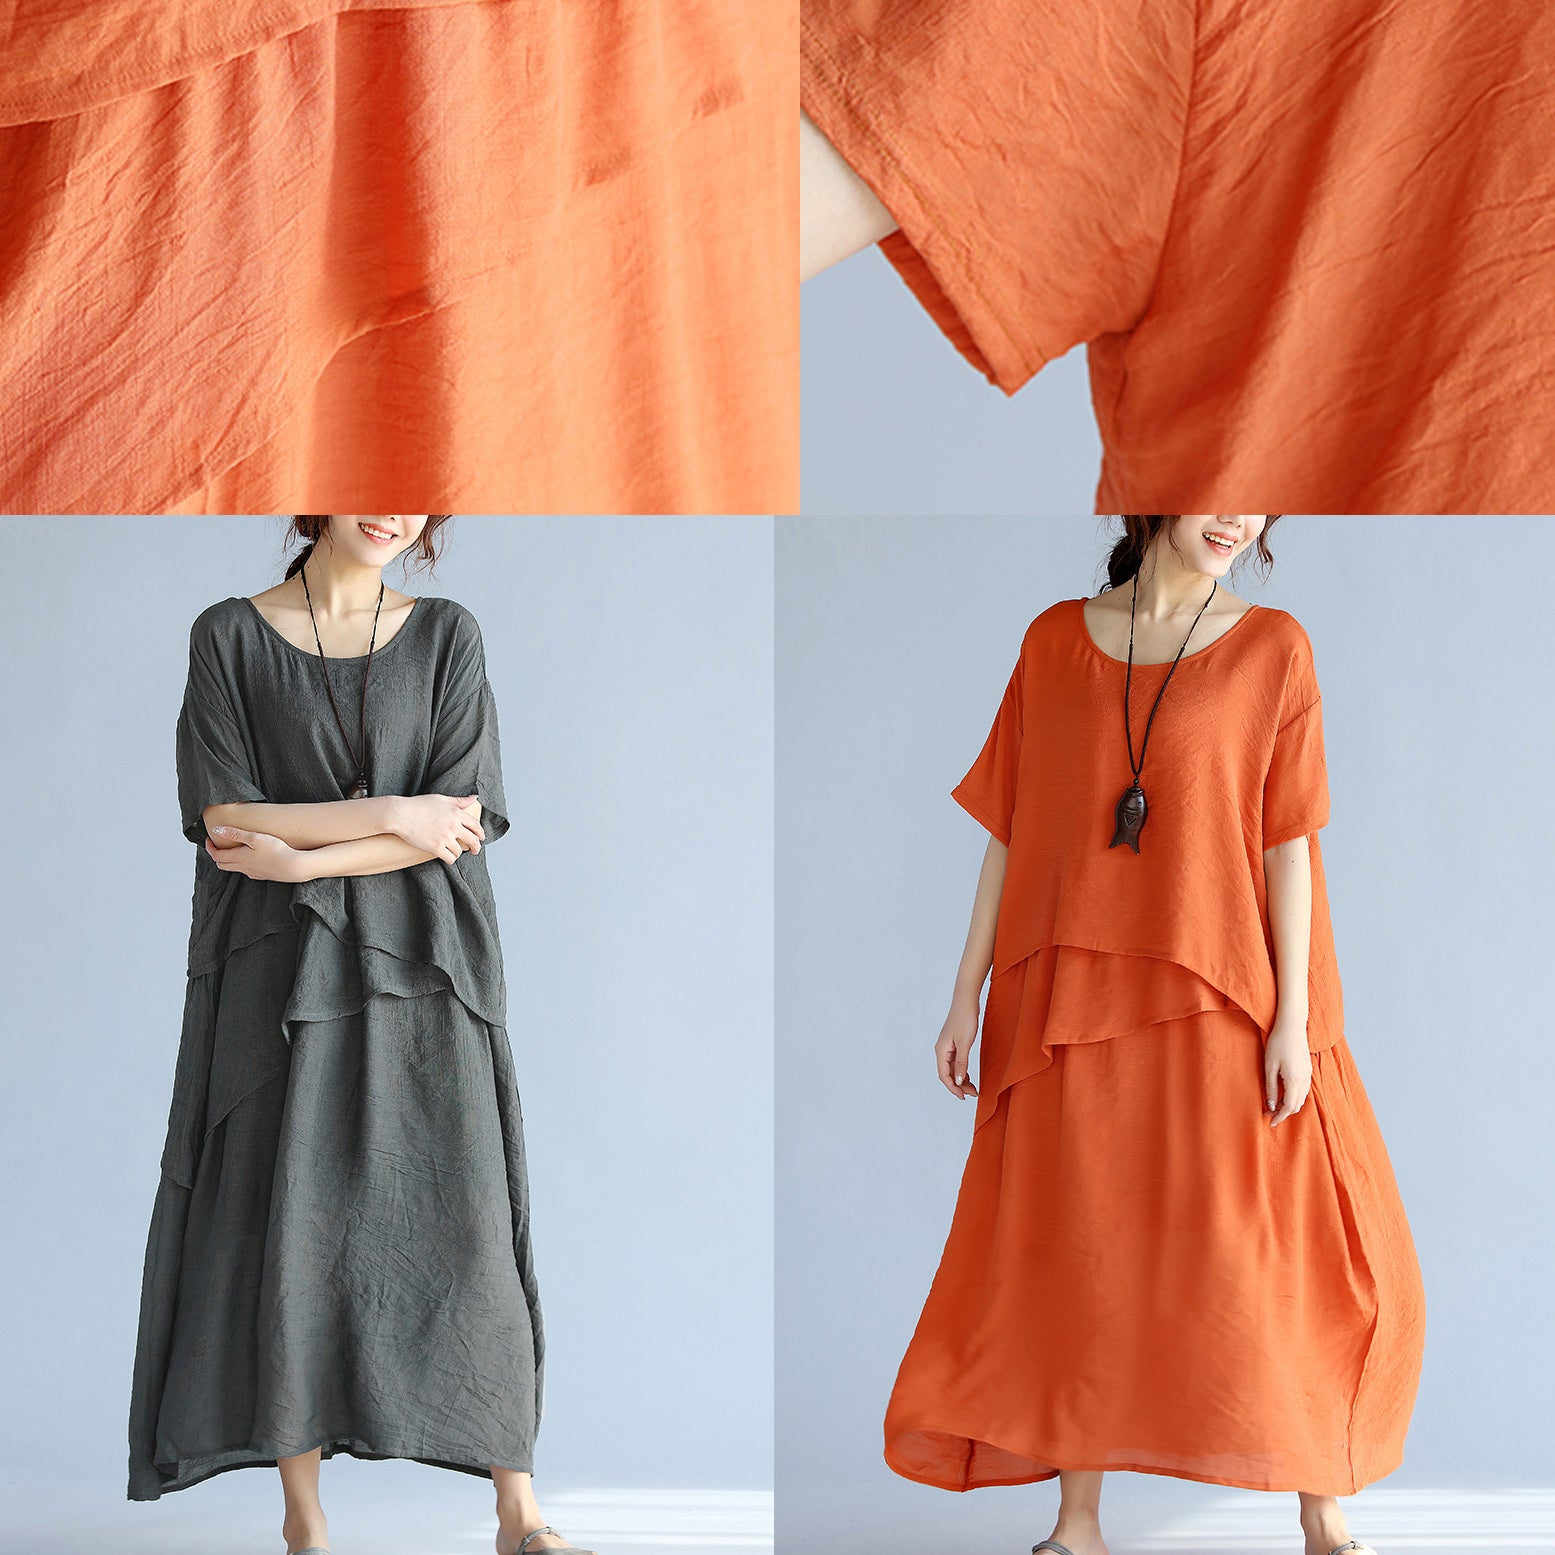 a90cba3d948 ... baggy gray long linen dresses oversized layered cotton maxi dress  vintage short sleeve cotton clothing ...